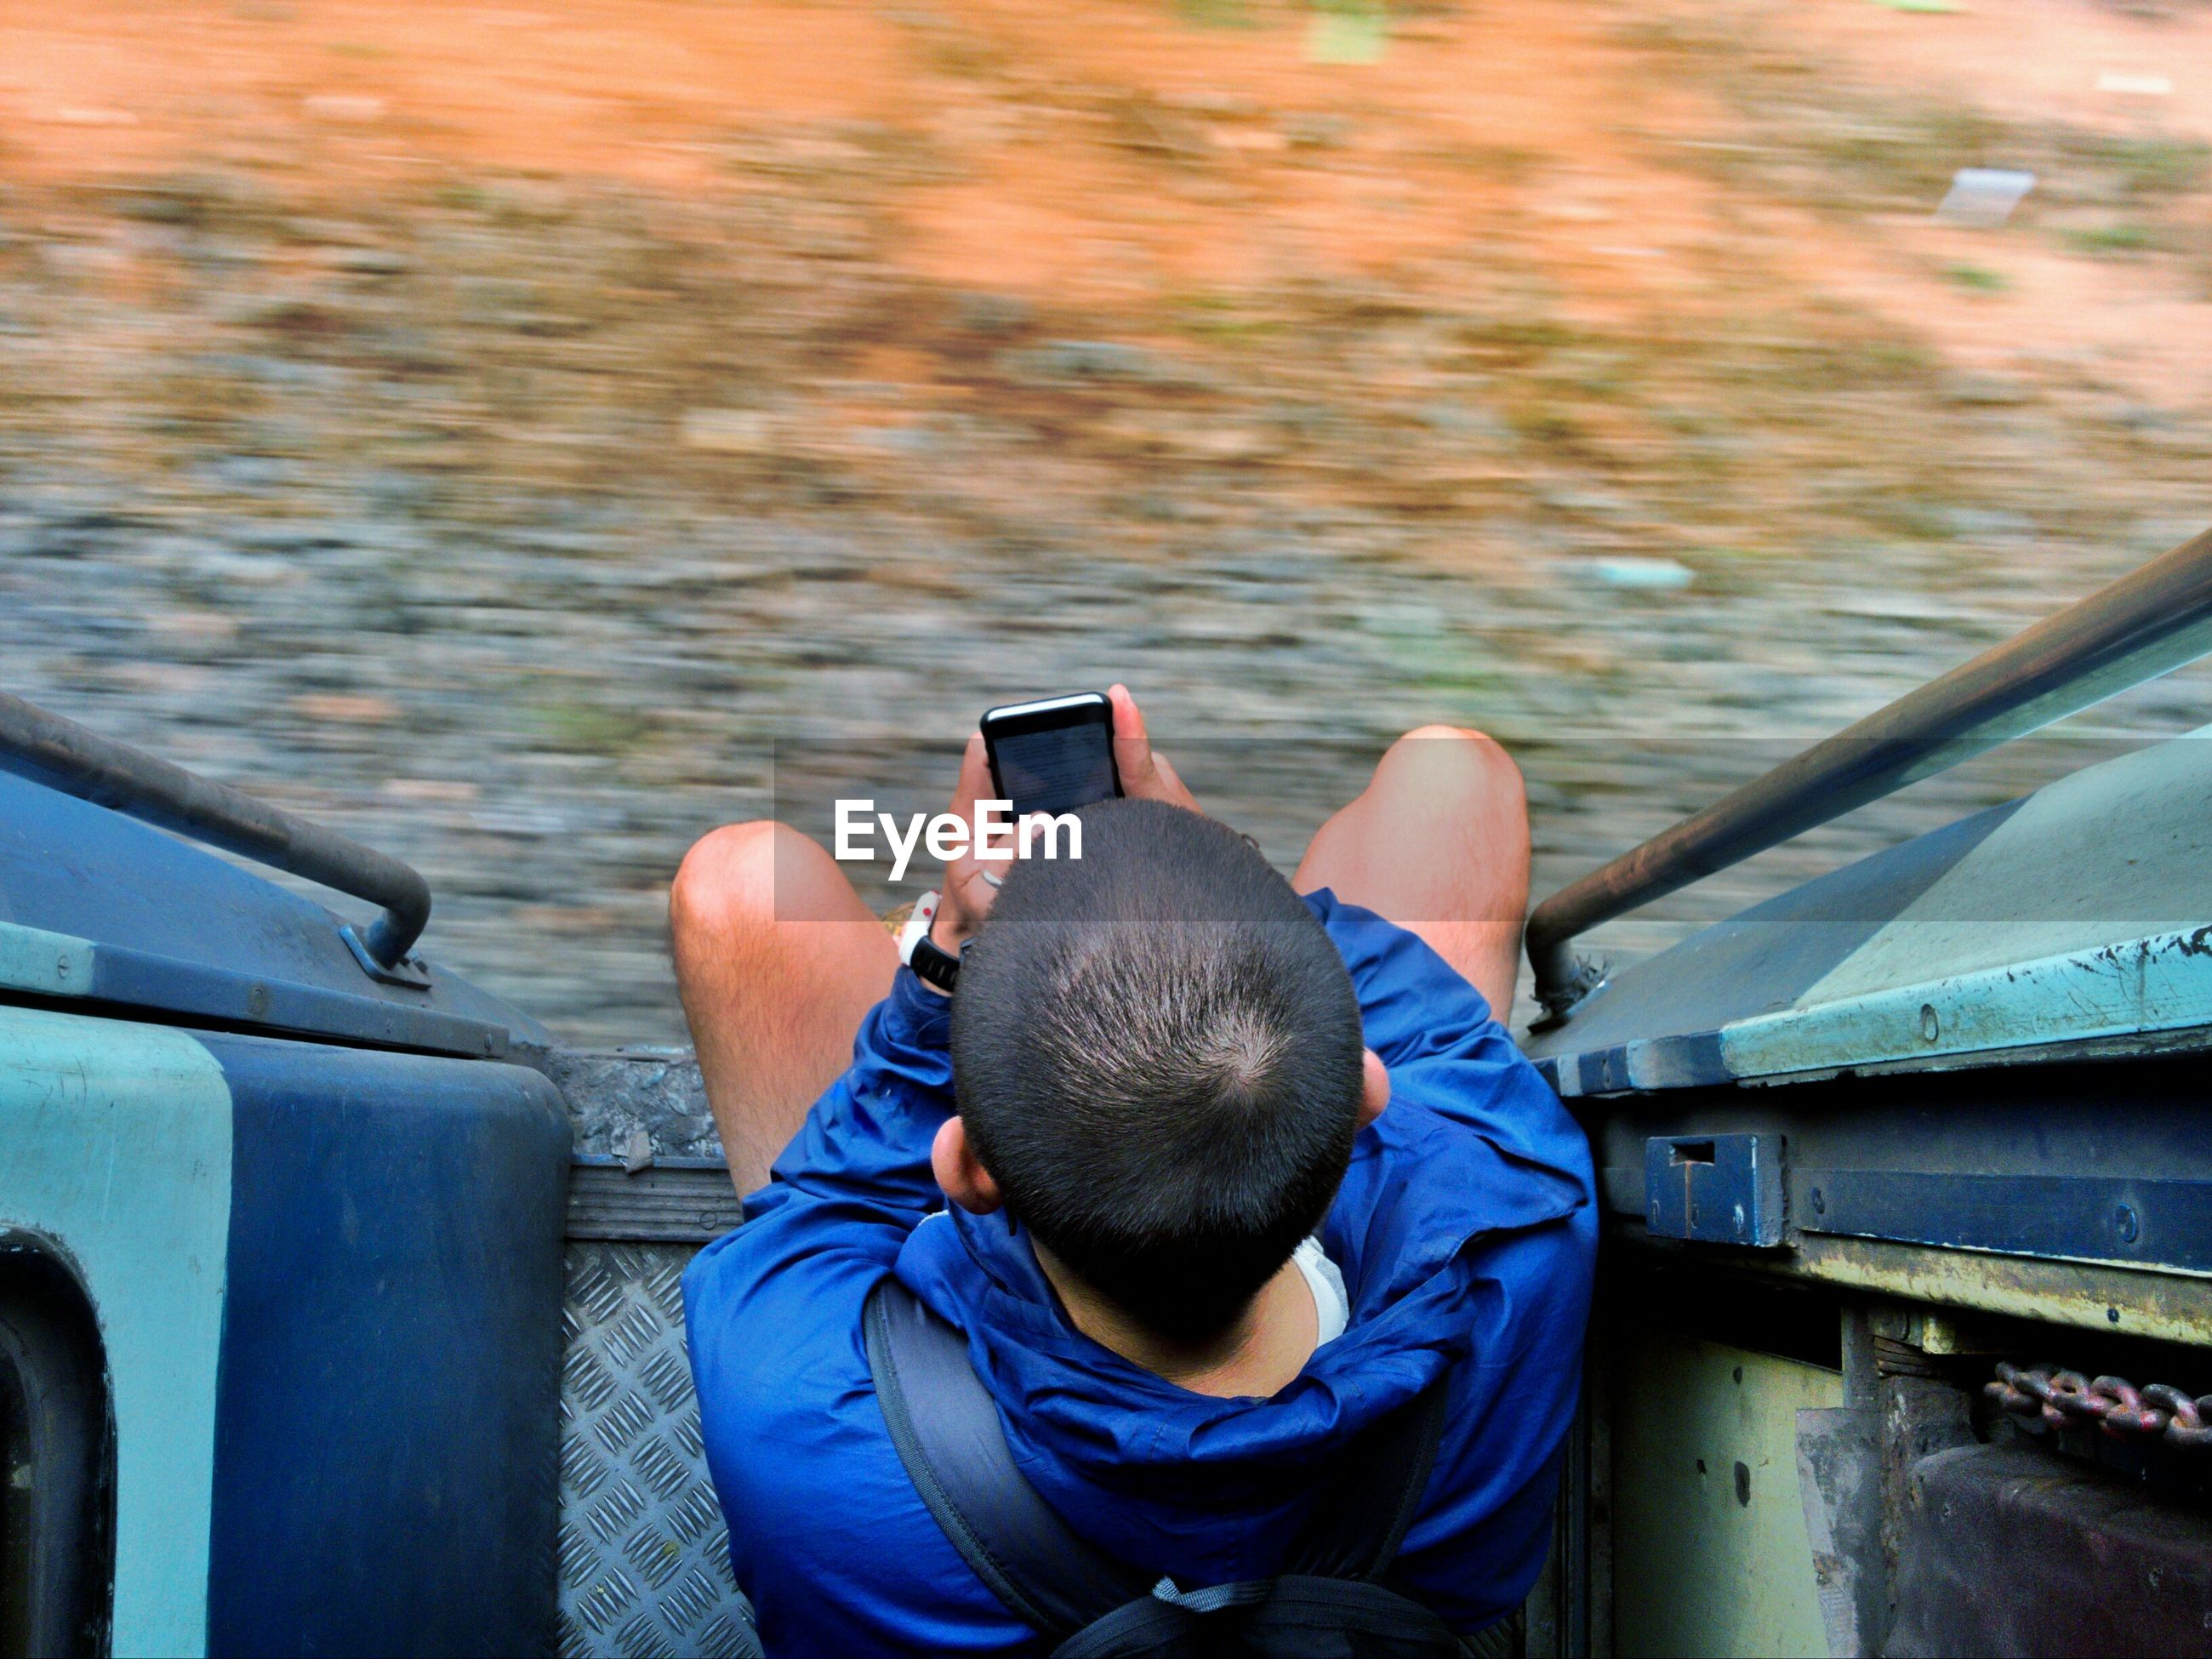 Directly above shot of boy using mobile phone at entrance of train